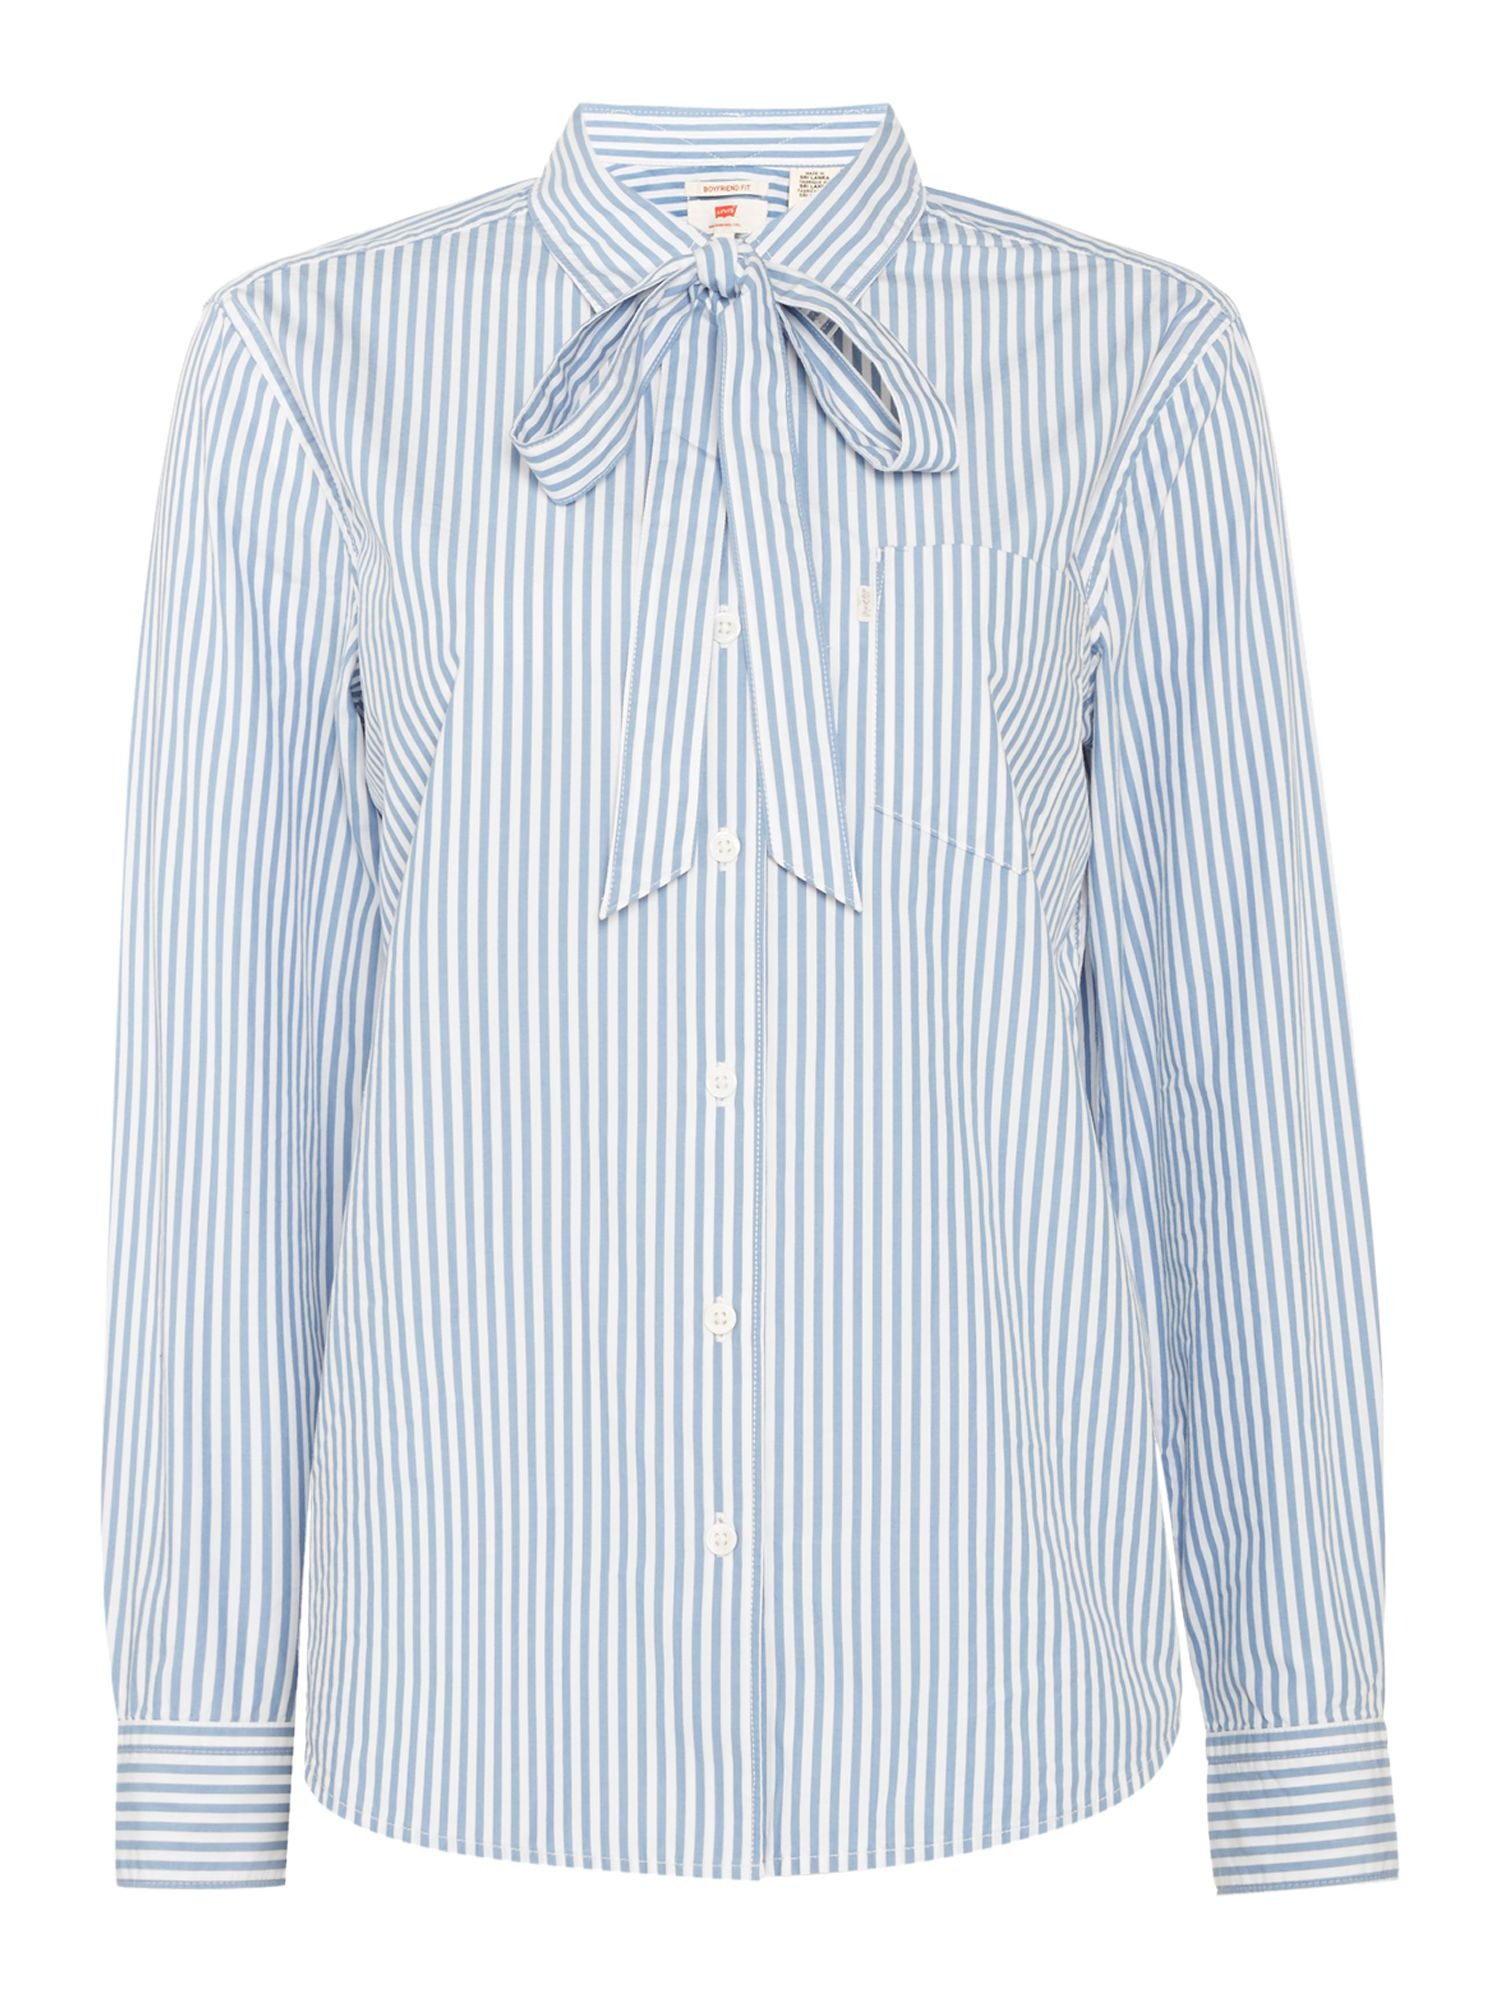 Levi's Sidney Tie Neck Shirt In Basswood quiet Harbour, Pale Blue